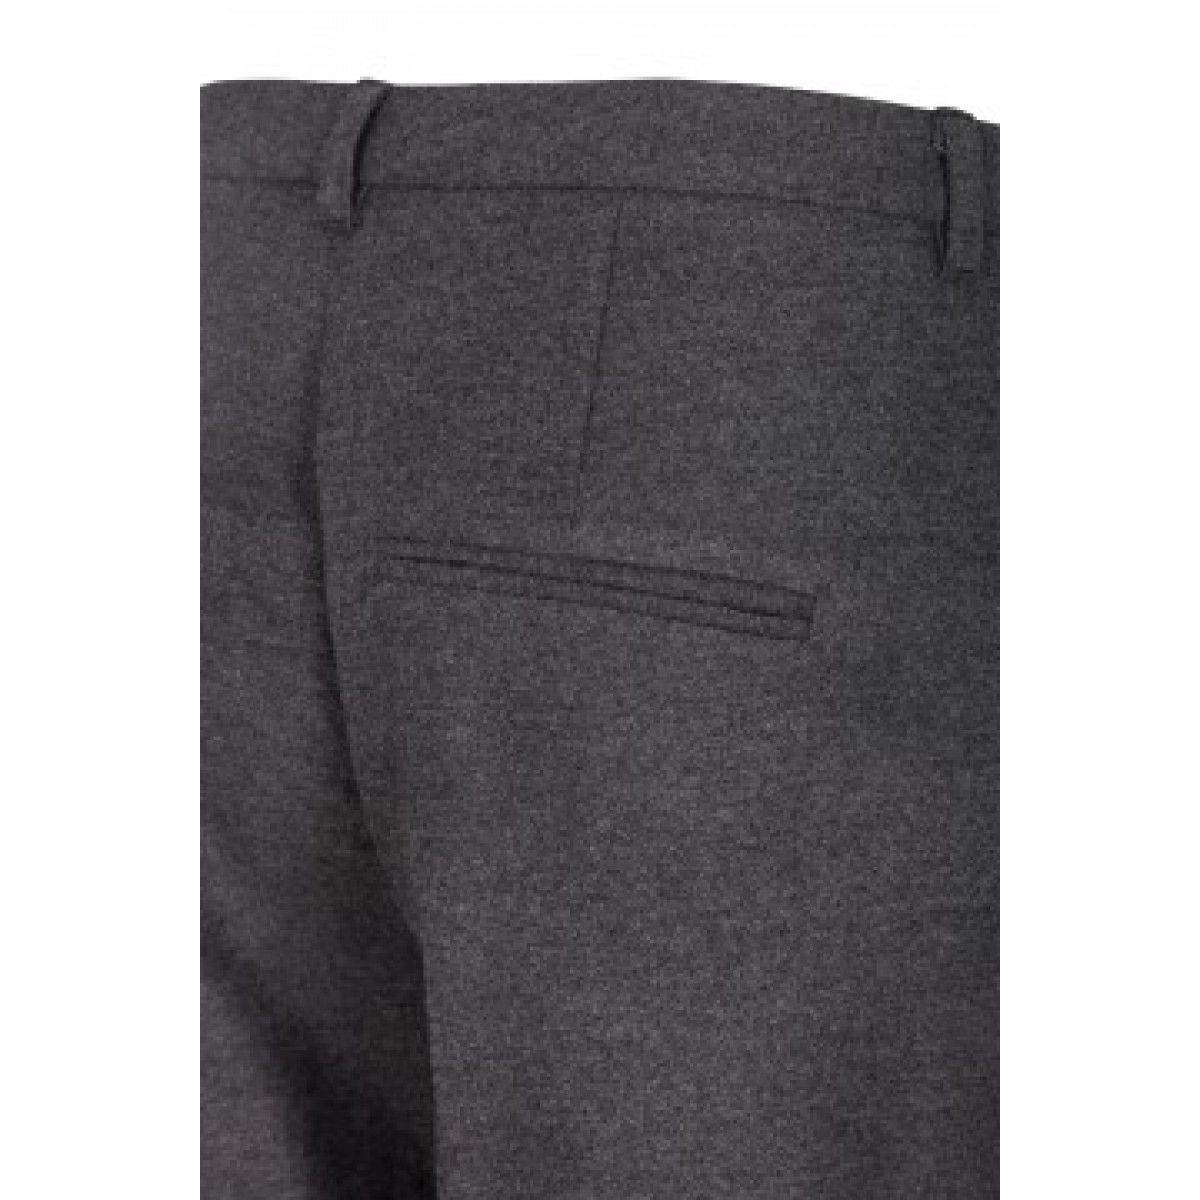 Oui 55761-9783 Pants Dark Grey-35